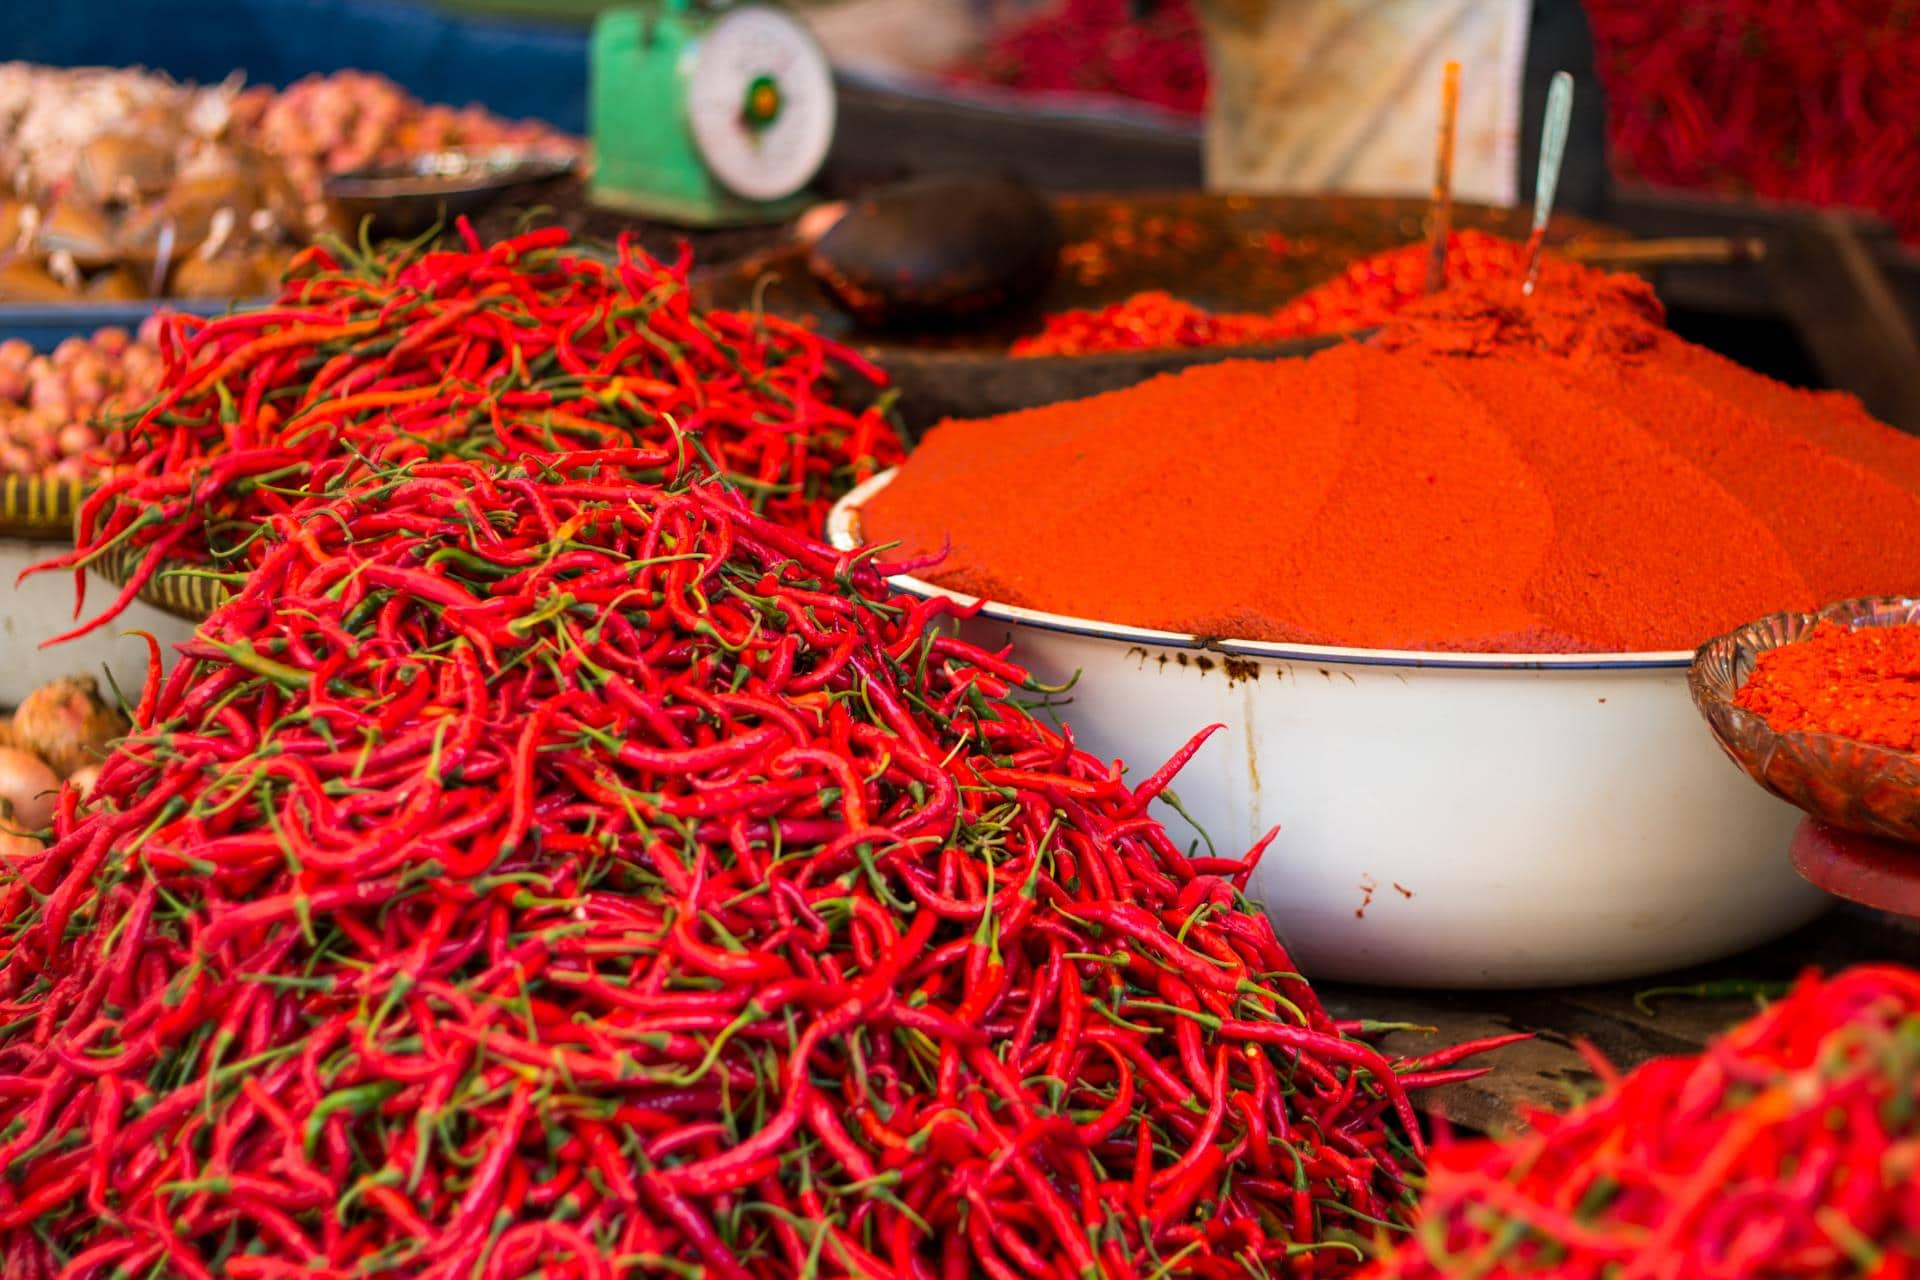 Hot peppers (cabe) and sambal are a Kerinci staple. Some of the spiciest food in Indonesia is found here.